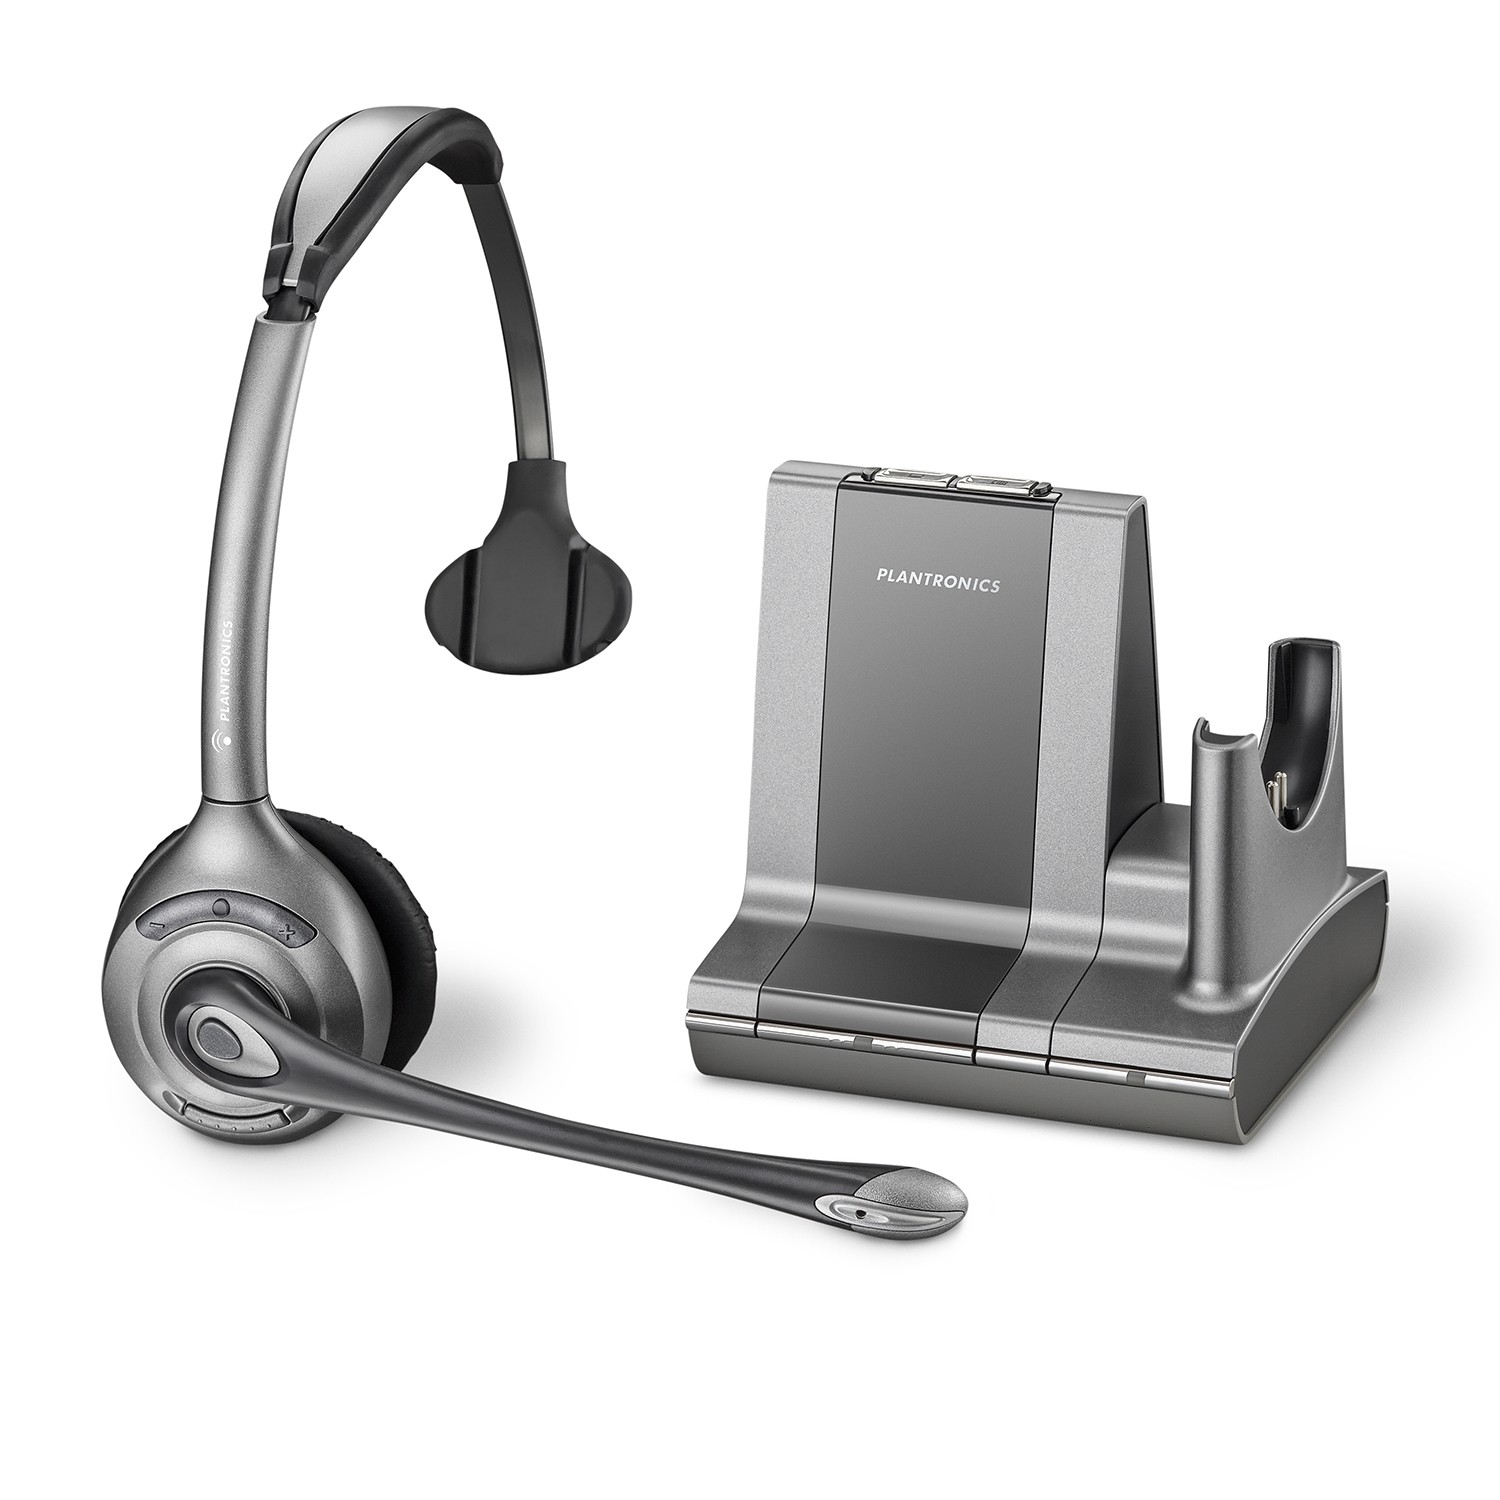 Plantronics Savi Office WO300 Wireless Monaural Headset for PC and Desk Phone - A Grade